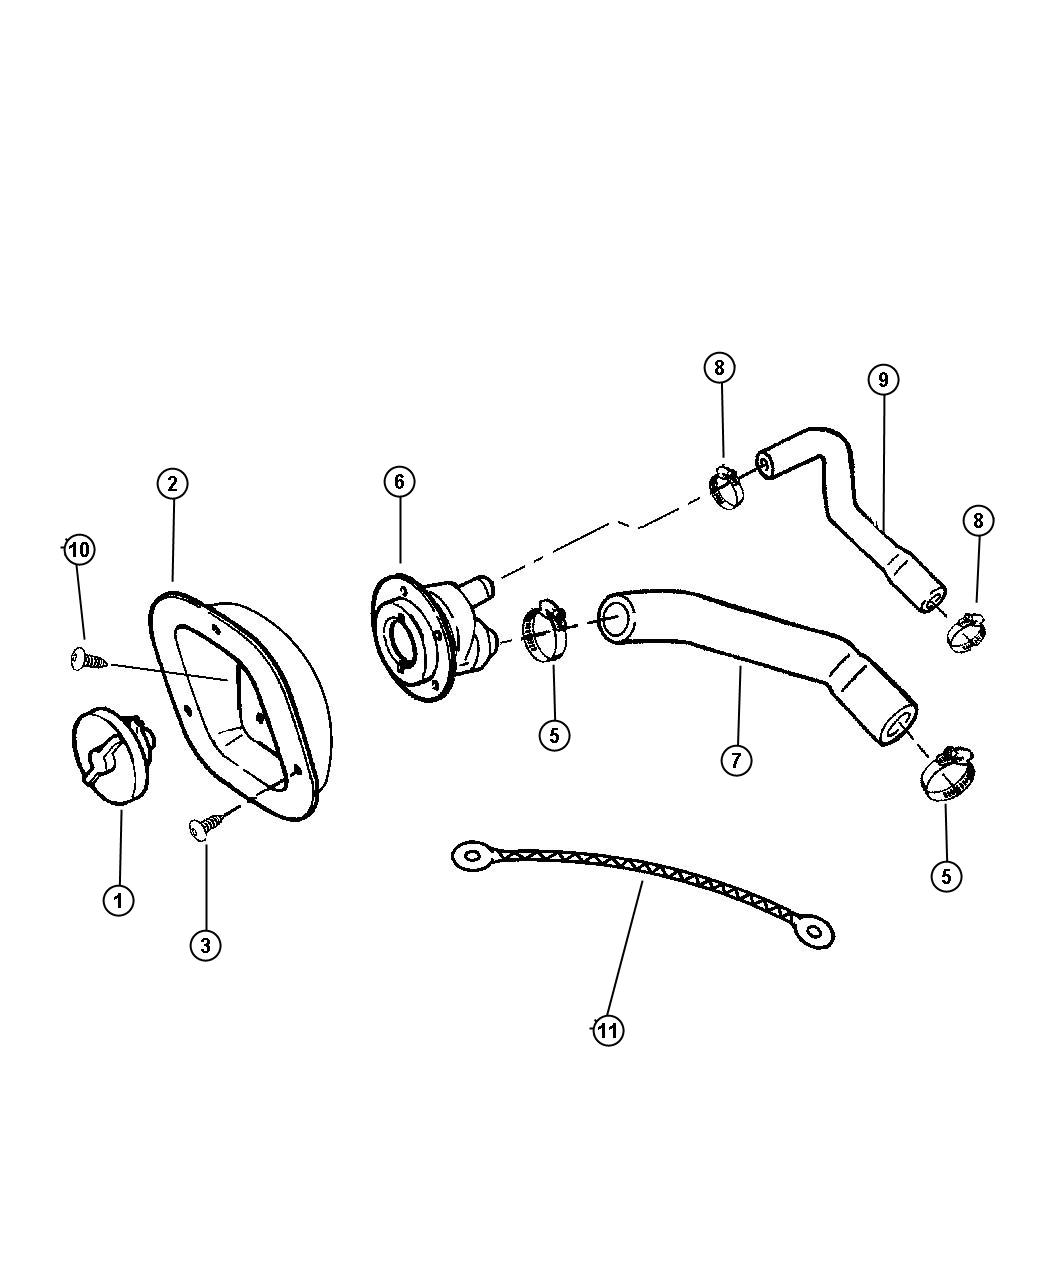 1998 Dodge Grand Caravan Used for: SCREW AND WASHER. 190